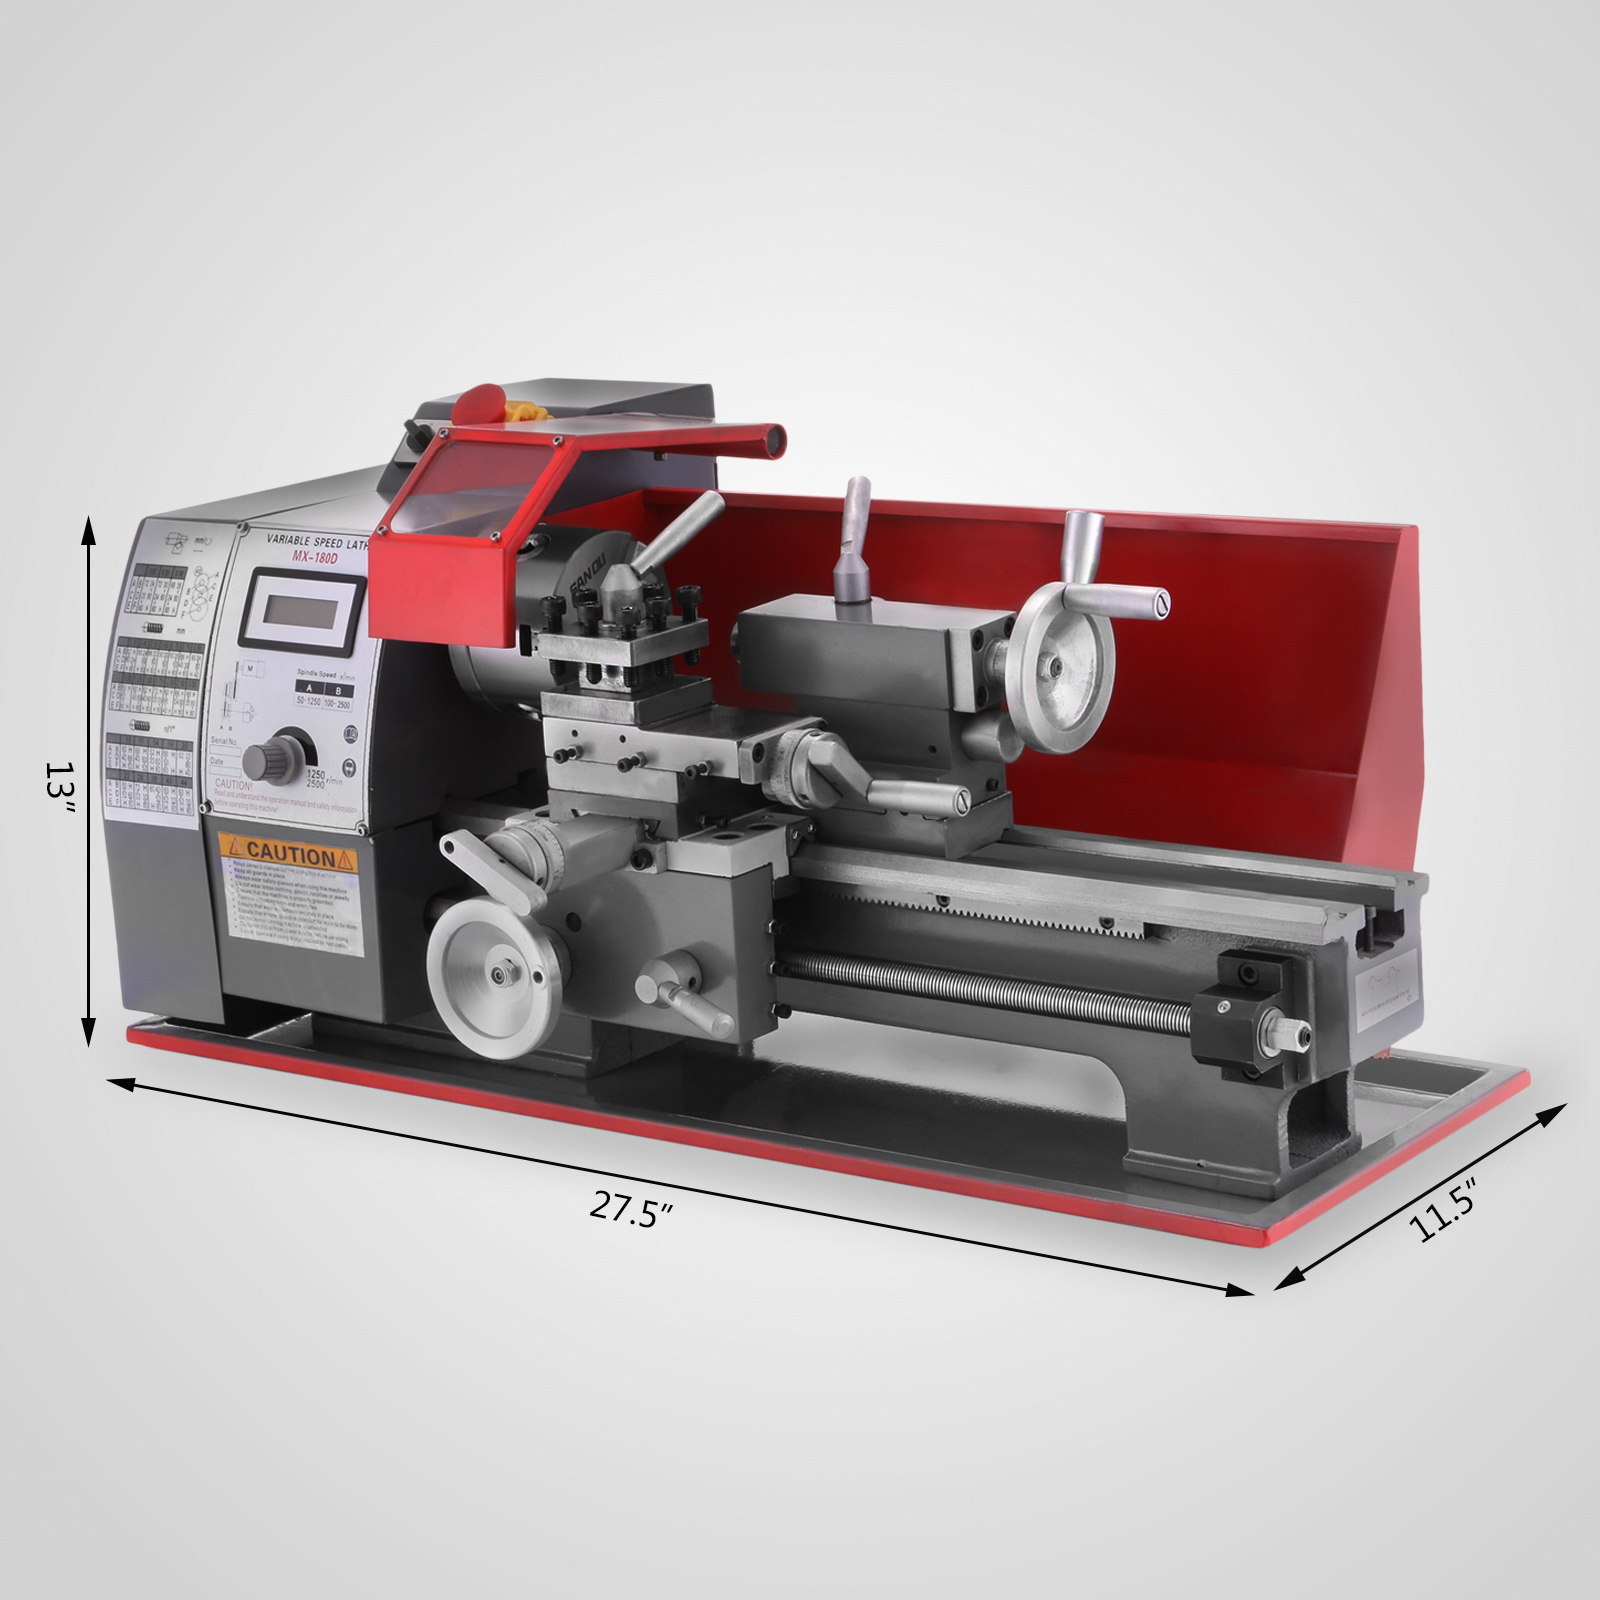 750W Strong Gear Power Metal Combo Lathe Milling Drilling Machine Mini Metal Lathe Machine